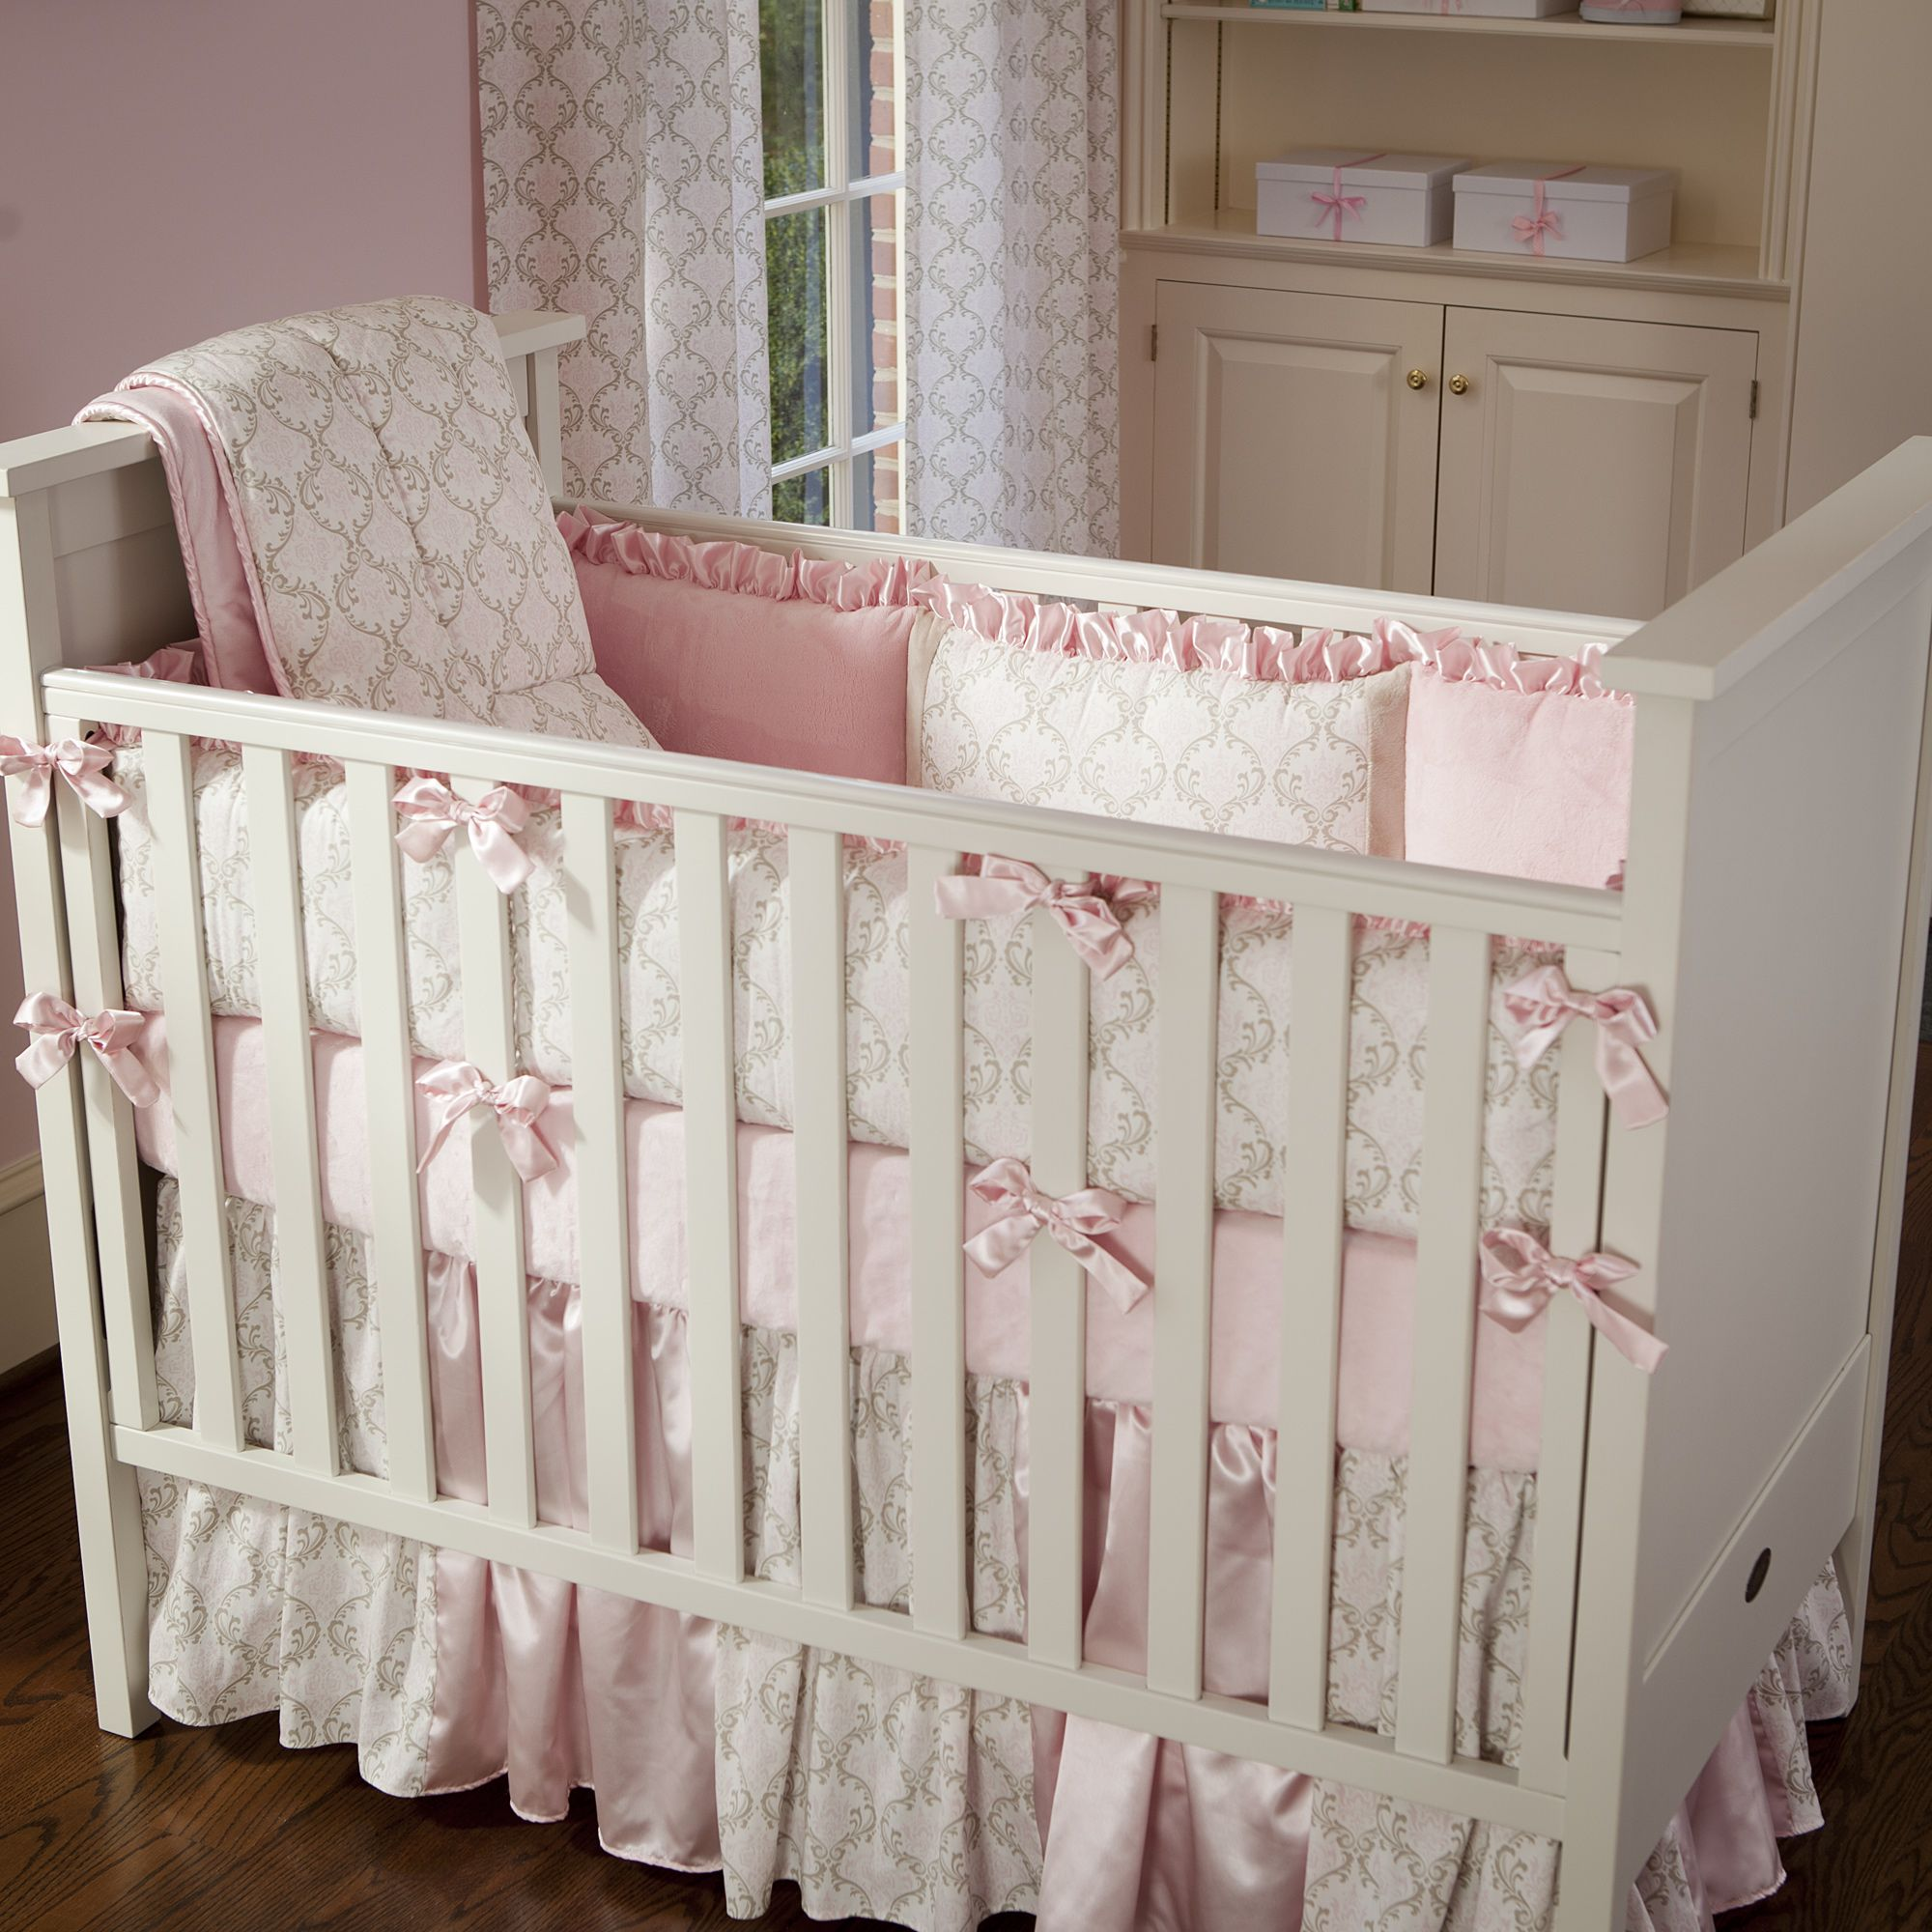 Crib bumpers babies r us - Crib Bedding Sets